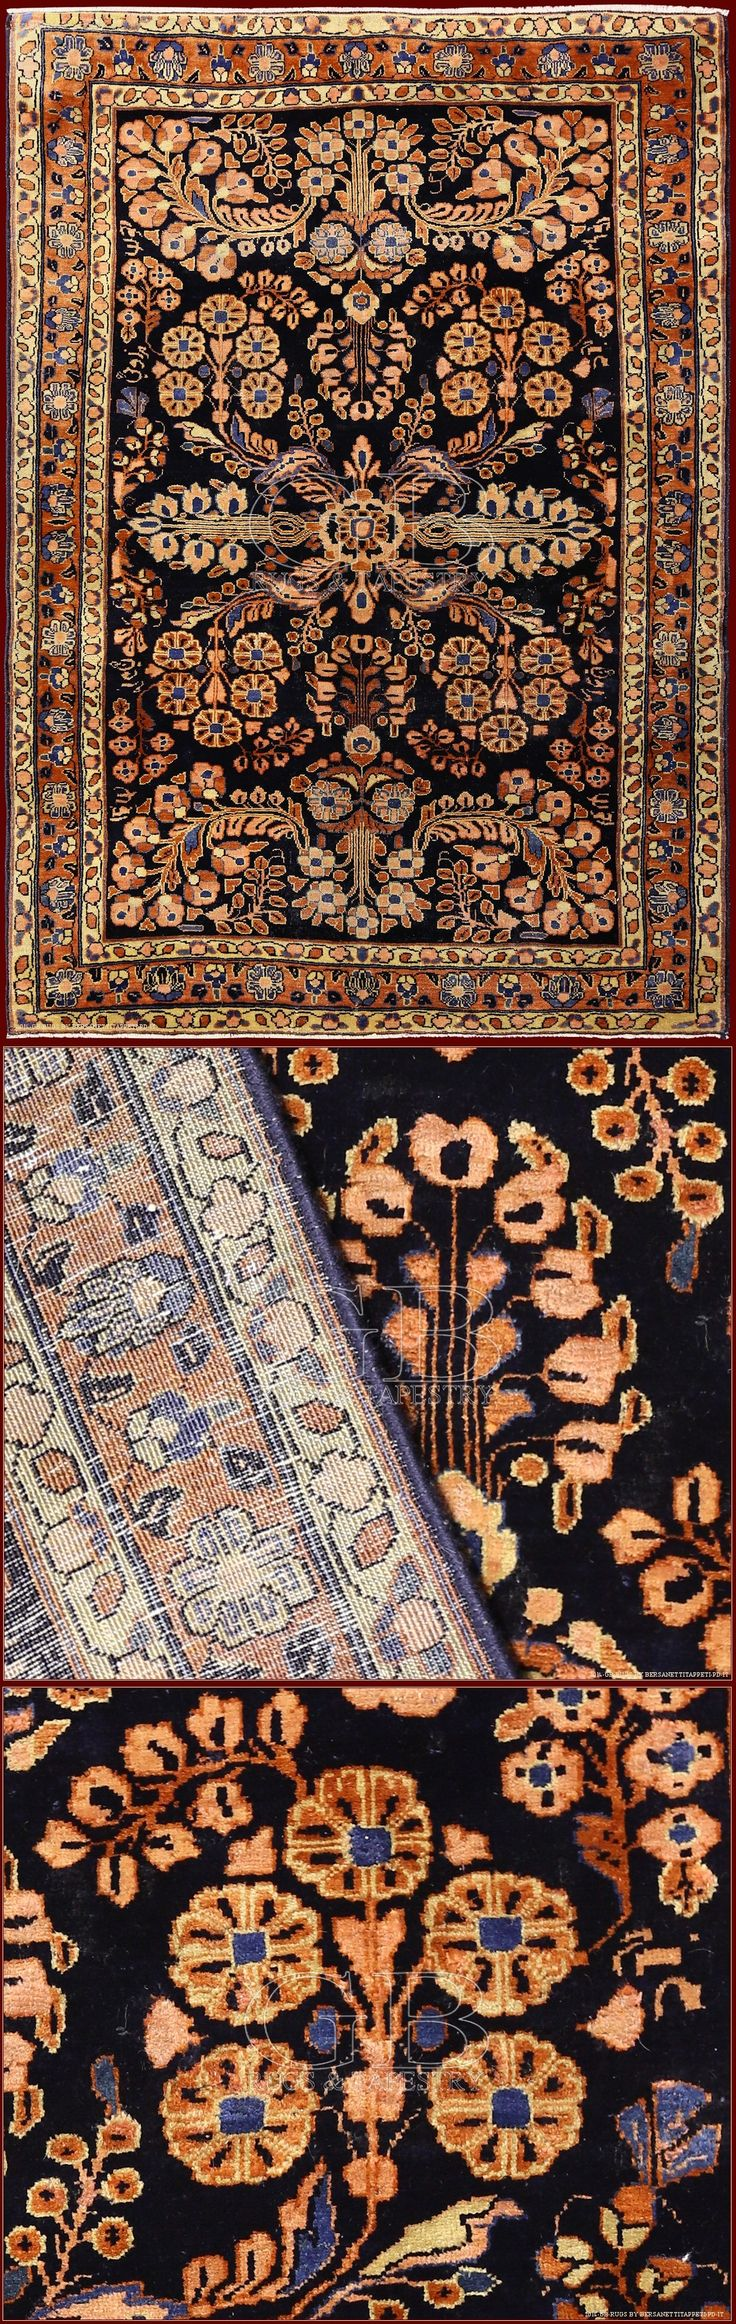 Elegant this SAROUK ANTIQUE RUG is in good state of maintenance: it is full pile and it has never suffered restorations. They are rugs that were knotted on commission in the district of Arak to be exported in U.S.A. between the end of 19th. sent. and the beginning of 20th. cent.